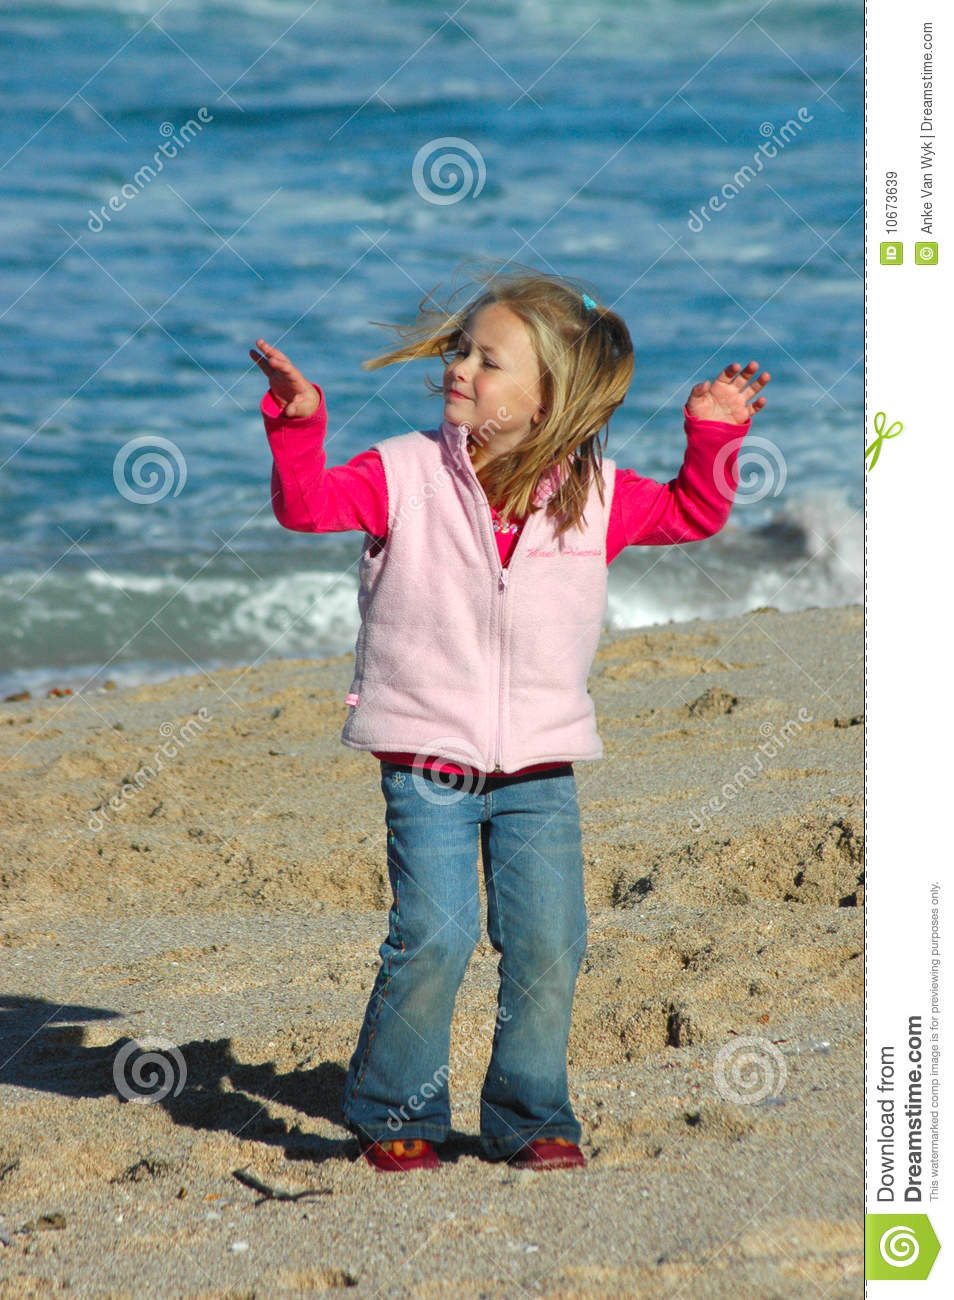 Girl dancing on beach